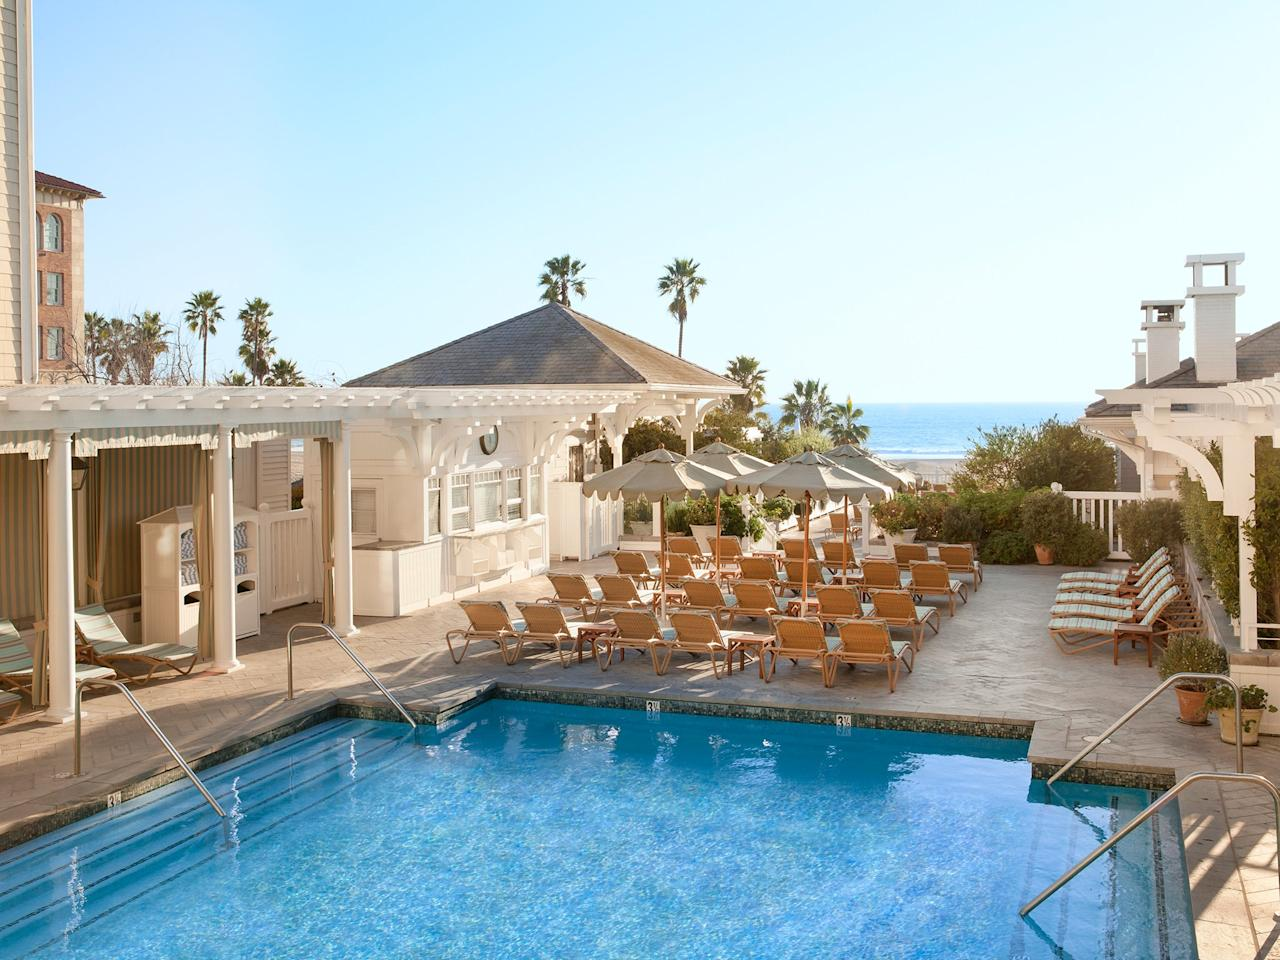 <p><strong>How did it strike you on arrival?</strong><br> The once novel and now iconic Shutters, which first opened in 1993, was the left coast's idea of an East Coast beach house.  The white shingled oceanfront property got a top-to-bottom redo in 2005, led by Michael S. Smith, the interior designer who famously decorated the Obama White House. The lobby is warm and inviting like the living room of a house in the Cape, with two large fireplaces. And the art! Around the hotel, you'll see works by Modern art greats like David Hockney, Robert Motherwell, Claes Oldenburg, and Roy Lichtenstein.</p> <p><strong>What's the crowd like?</strong><br> It's leisure travelers—plus a fair share of entertainment industry people, photographers, ad agency creatives, and anyone on an expense account who wants to pretend they're on vacation at the end of a long work day.</p> <p><strong>The good stuff: Tell us about the rooms.</strong><br> The smallest of the 186 breezy guest rooms and 12 suites are 450 square feet, and they all feel very residential—hardwood floors with hand-woven Tibetan rugs instead of carpets, built-ins instead of bulky furniture. Most are designed with sliding shuttered doors, surprisingly few of which open to reveal the ocean below. Many rooms have no view at all, so be sure to get the skinny before you book.</p> <p><strong>How about the little things, like mini bar, or shower goodies. Any of that worth a mention?</strong><br> Room libraries include special hardback edition classics like Hemingway's The Old Man and the Sea. Rooms also come with a take-home souvenir: a rubber bath amenity of Shutter's signature whale—perfect for the kiddos if you left them back at home.</p> <p><strong>Please tell us the bathroom won't let us down.</strong><br> Bathrooms are spacious, with hardwood floors, 15-inch LCD televisions (for those who need a TV in the bathroom), and large whirlpool tubs. Open the shutters for outdoor views if you've got them while you're taking a soak.</